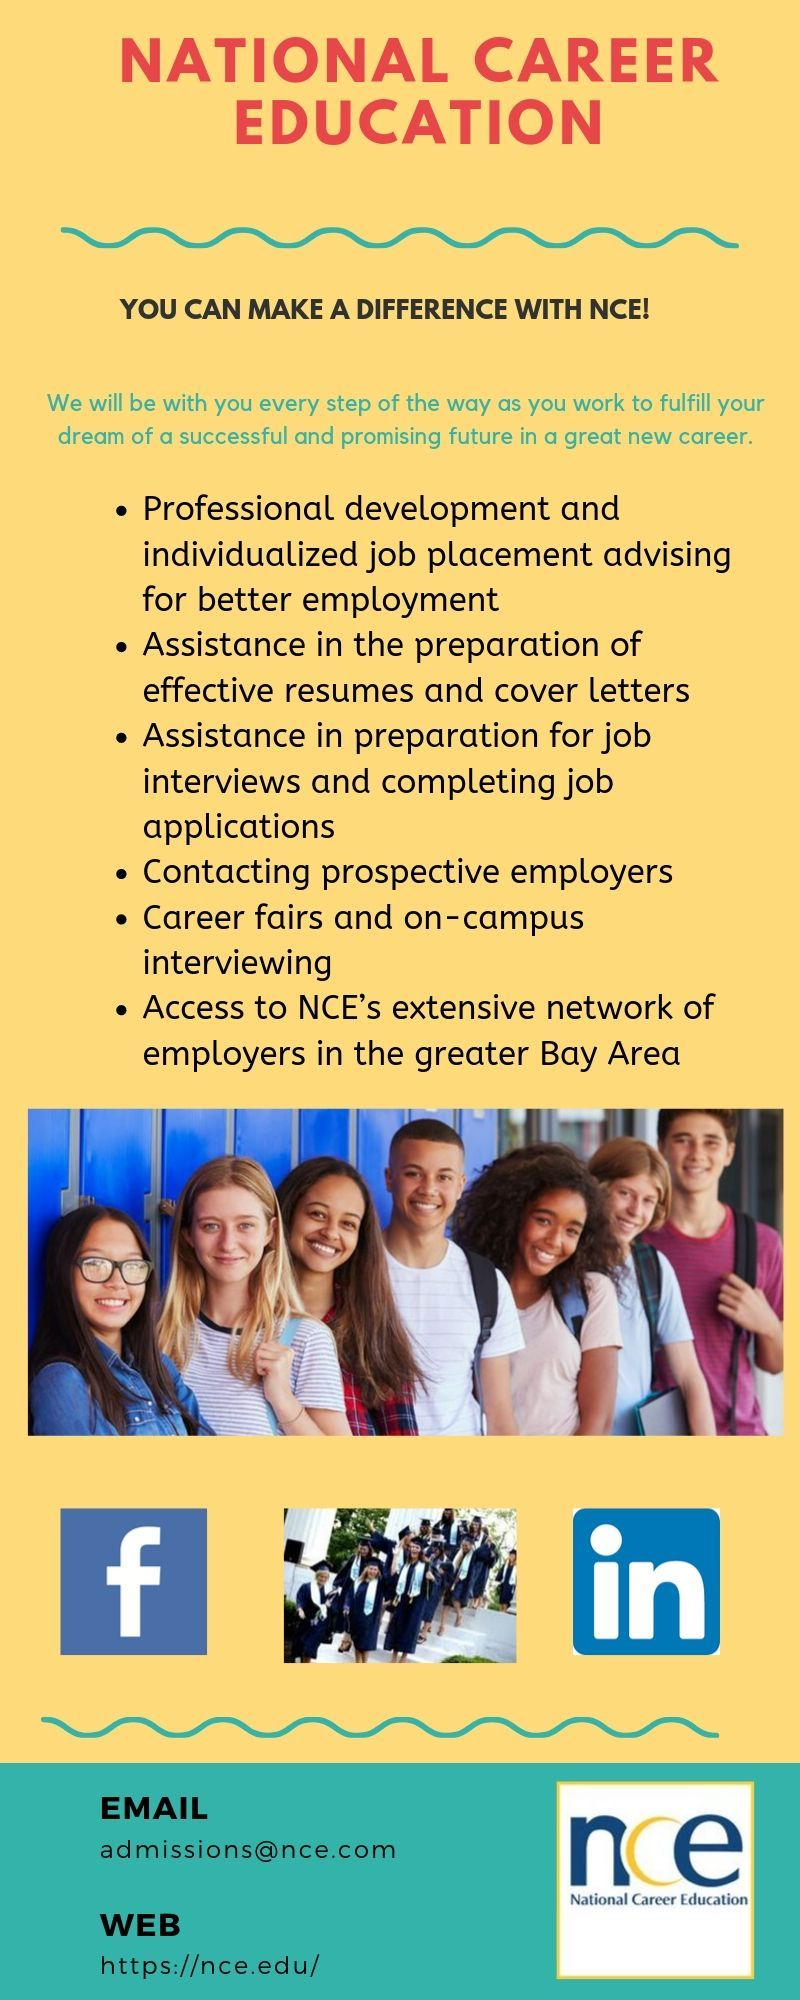 The NCE Career Services Department advises future and